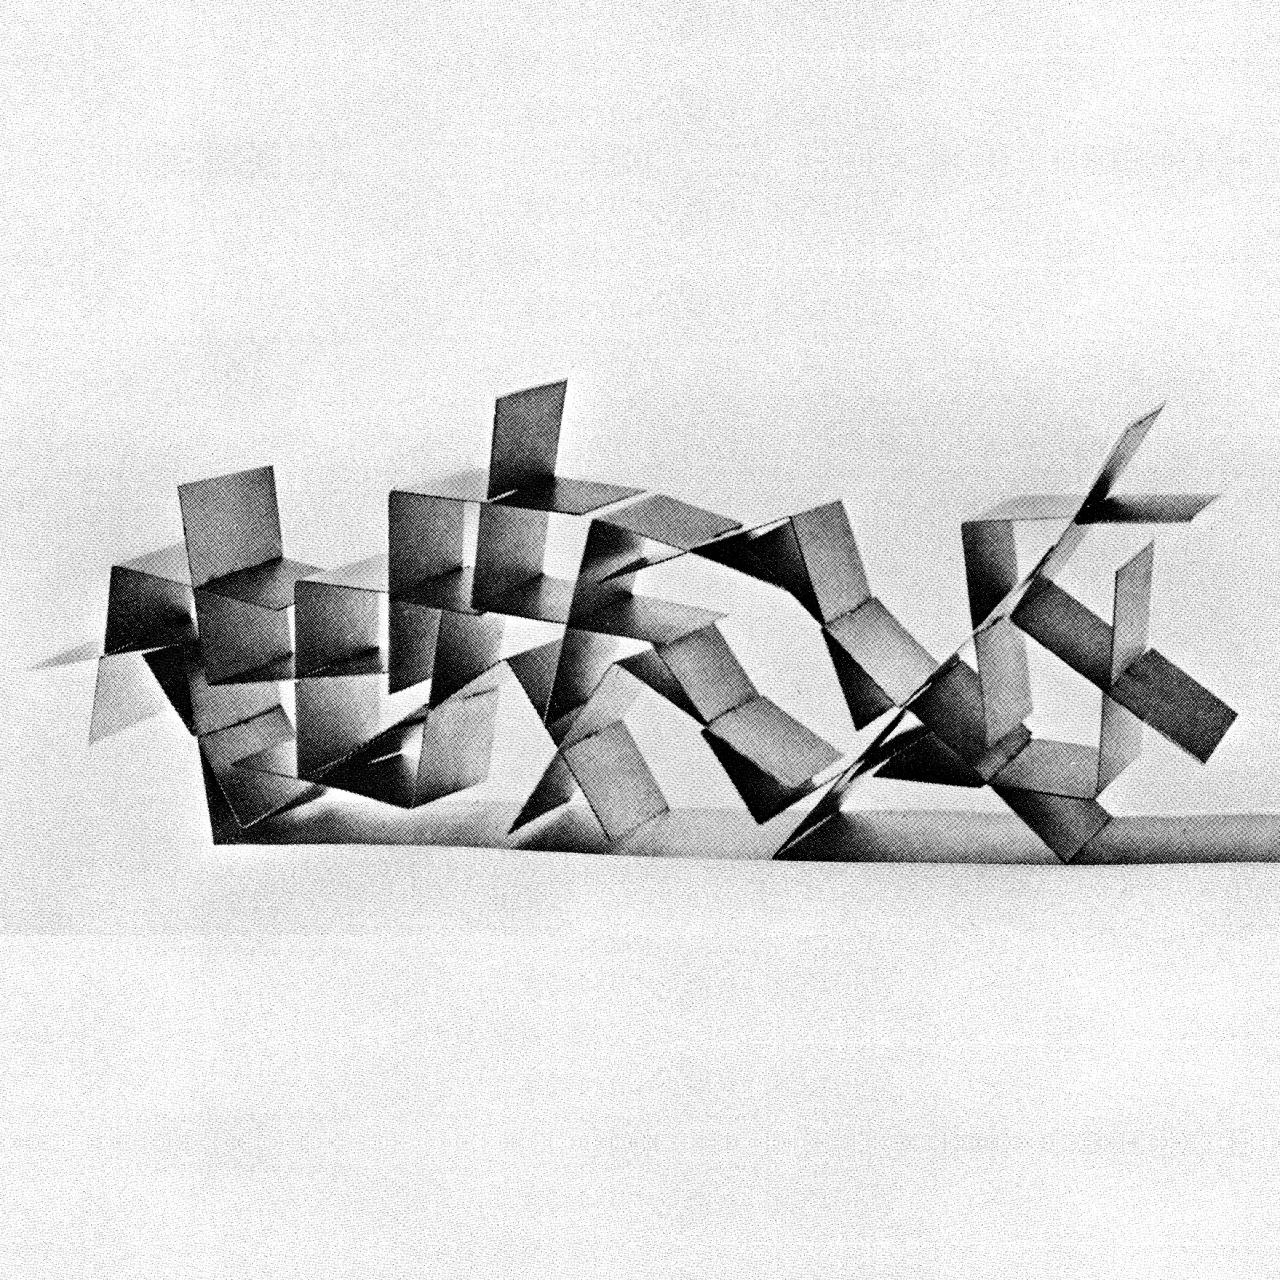 betonbabe:  BRUNO MUNARI ARTICULATED SCULPTURE, ca. 1950s / 1960s